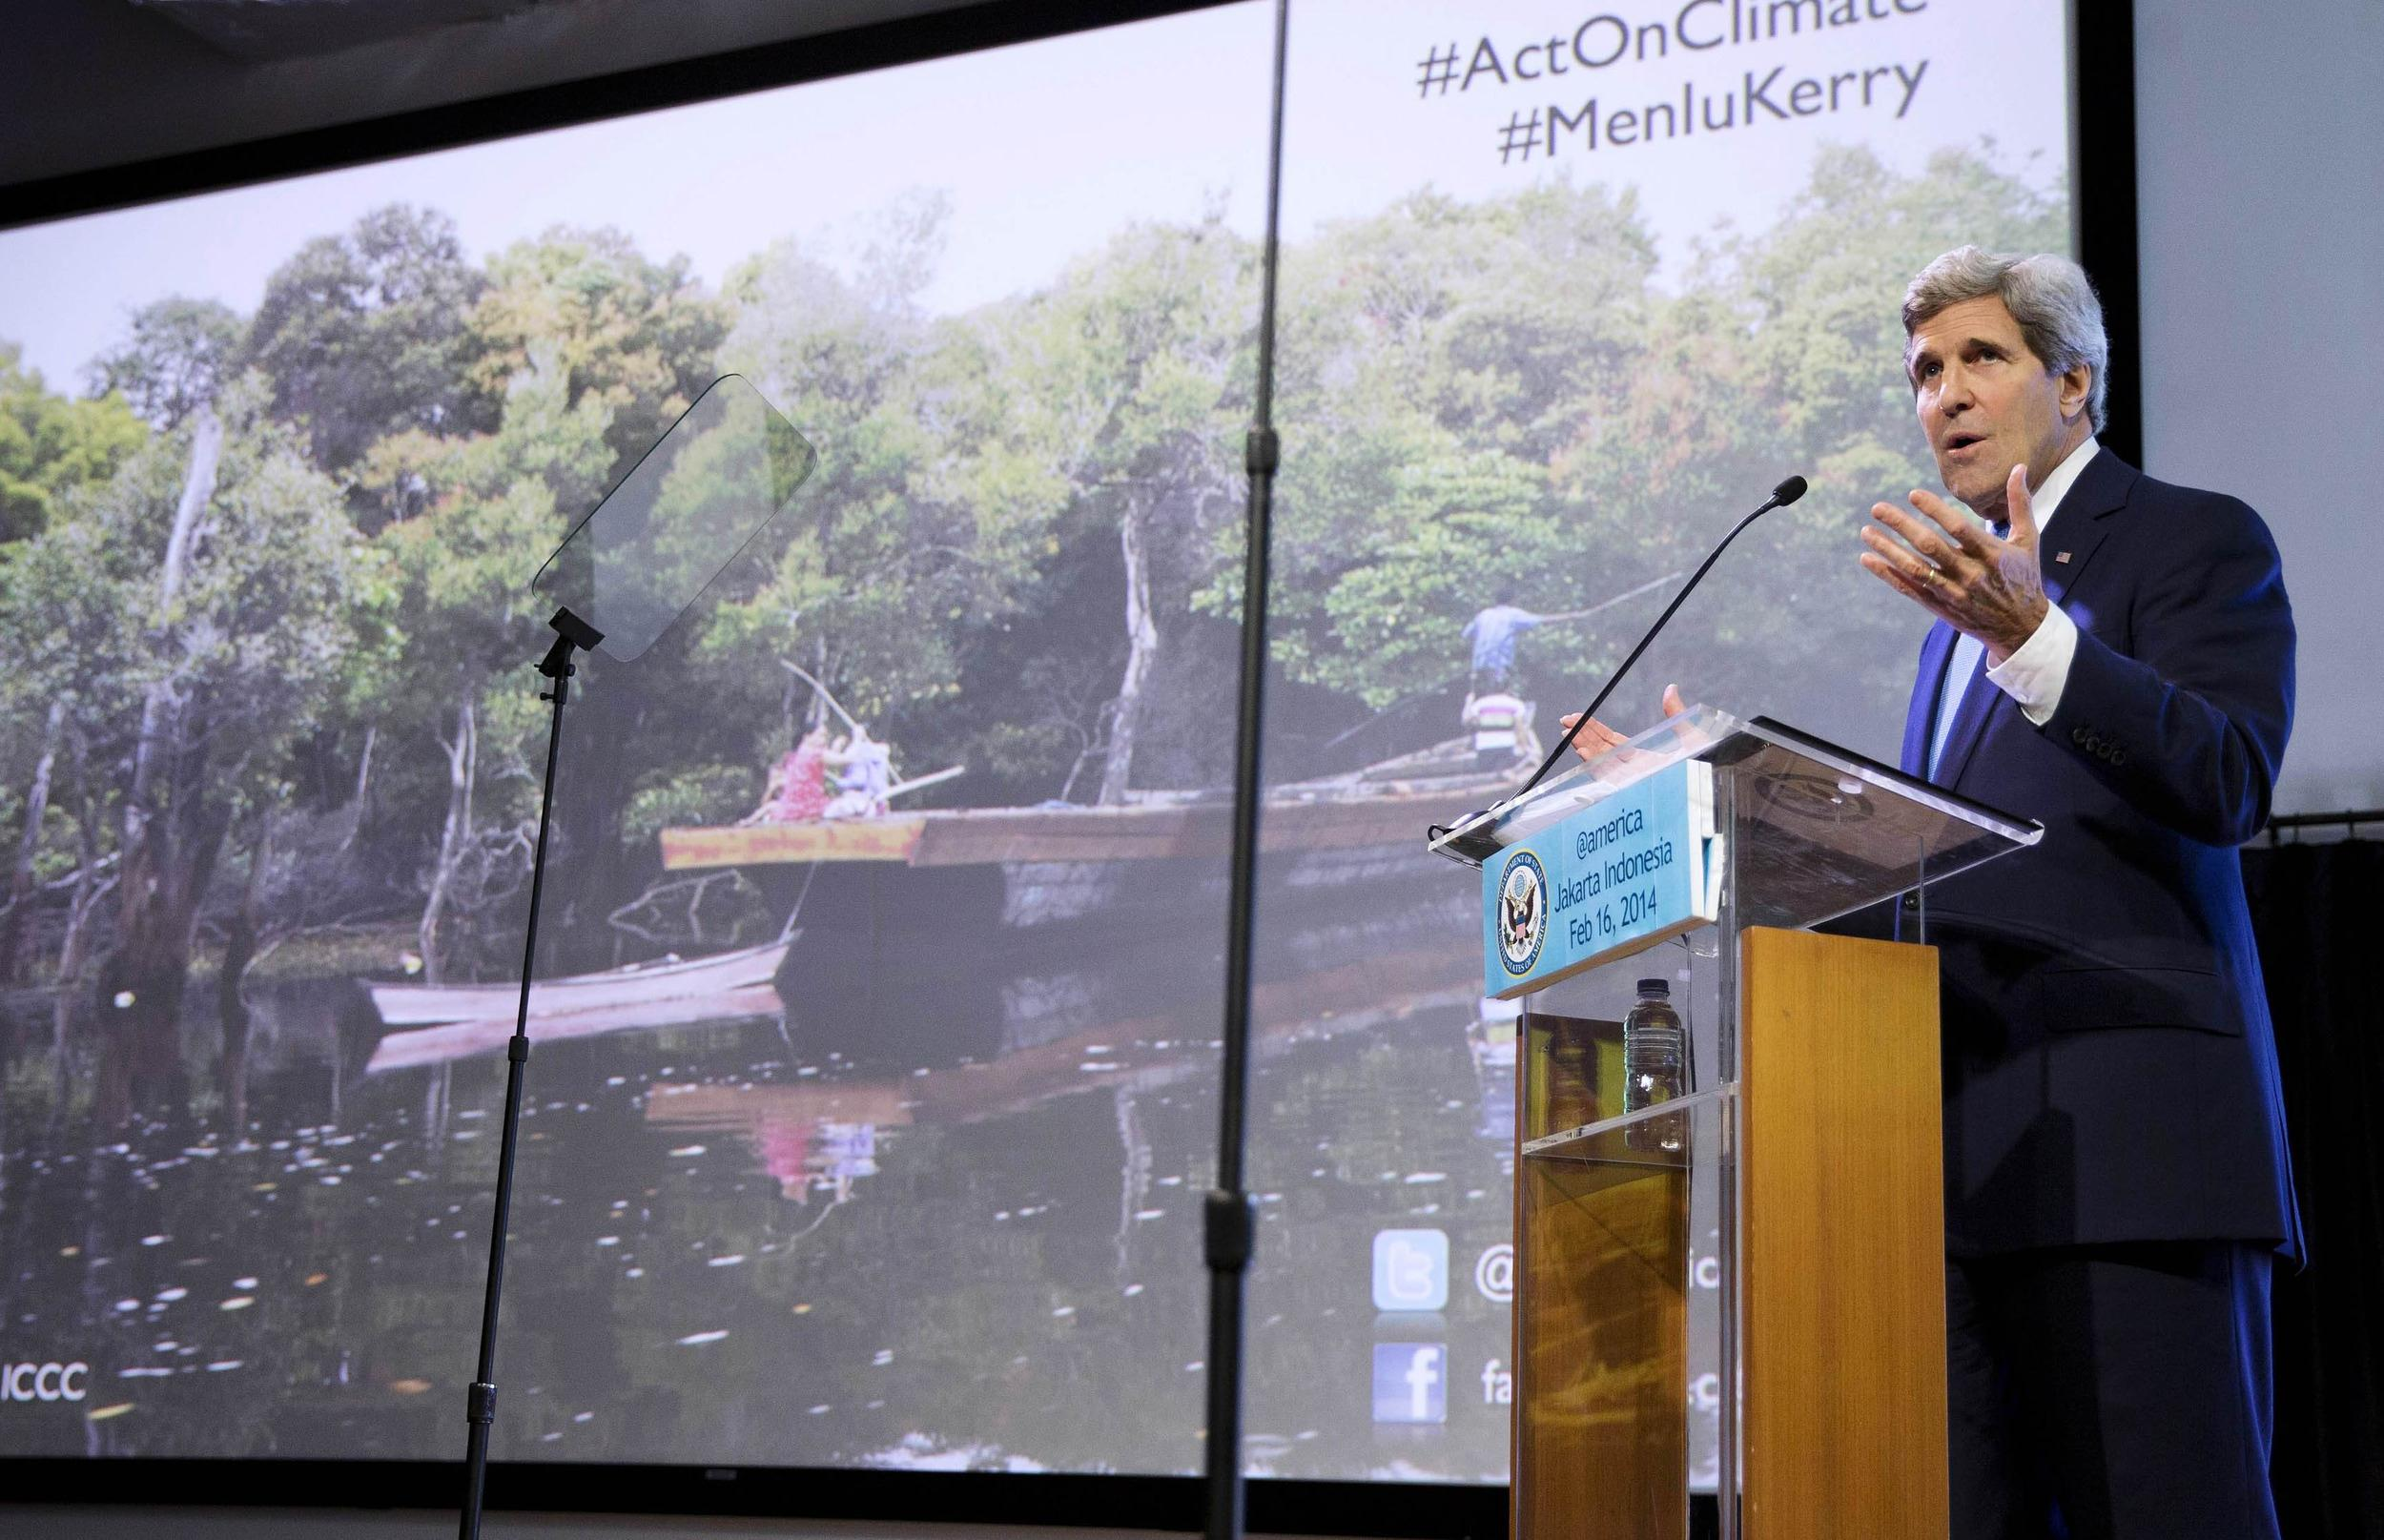 Image: U.S. Secretary of State Kerry gestures during a speech on climate change in Jakarta